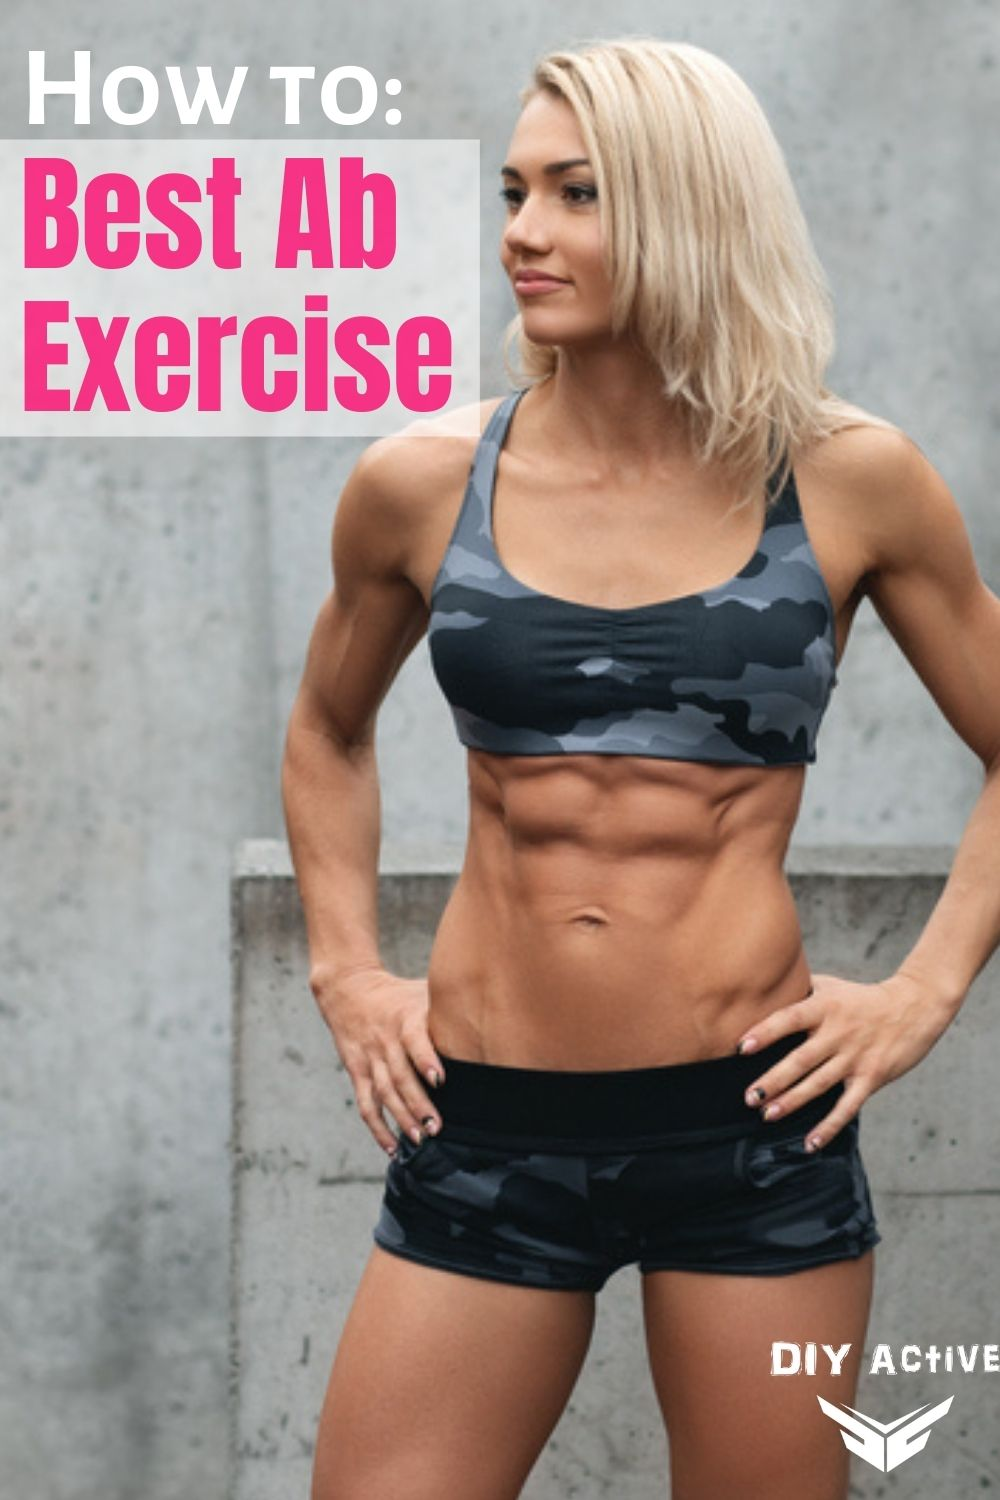 Best Ab Exercise? How to Do a Reverse Crunch Correctly